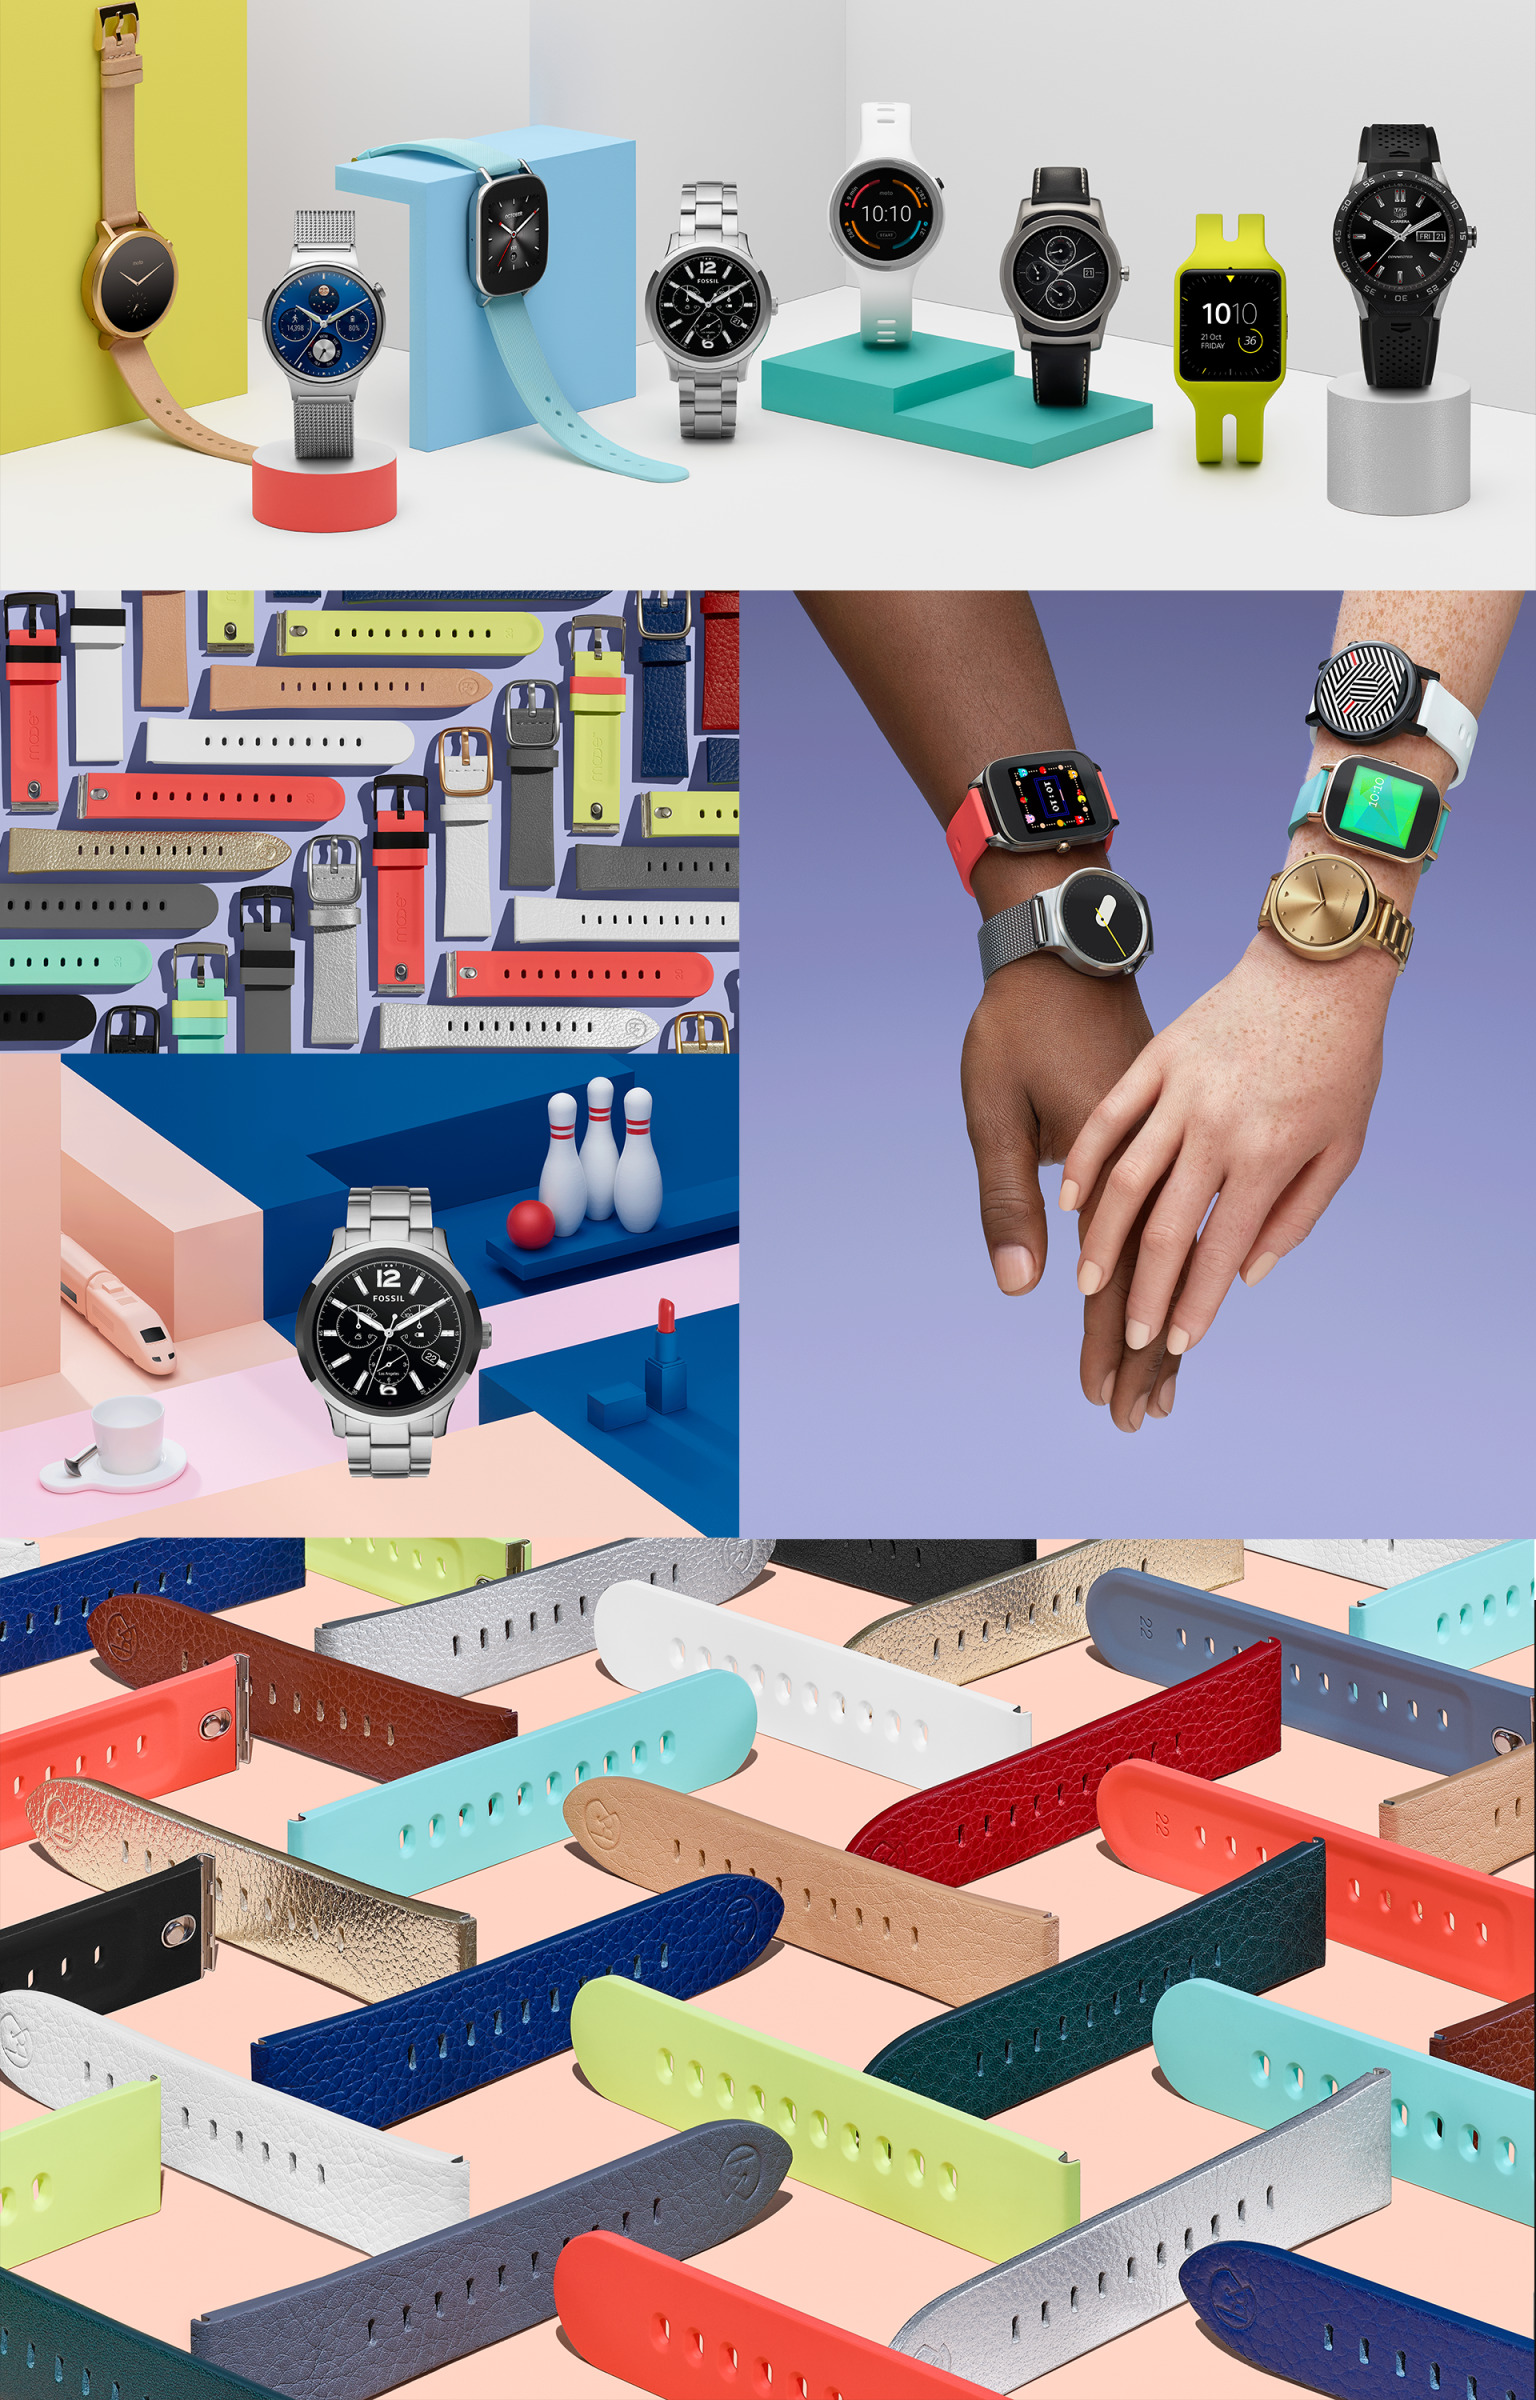 Android Wear - Make the Most of Every Moment